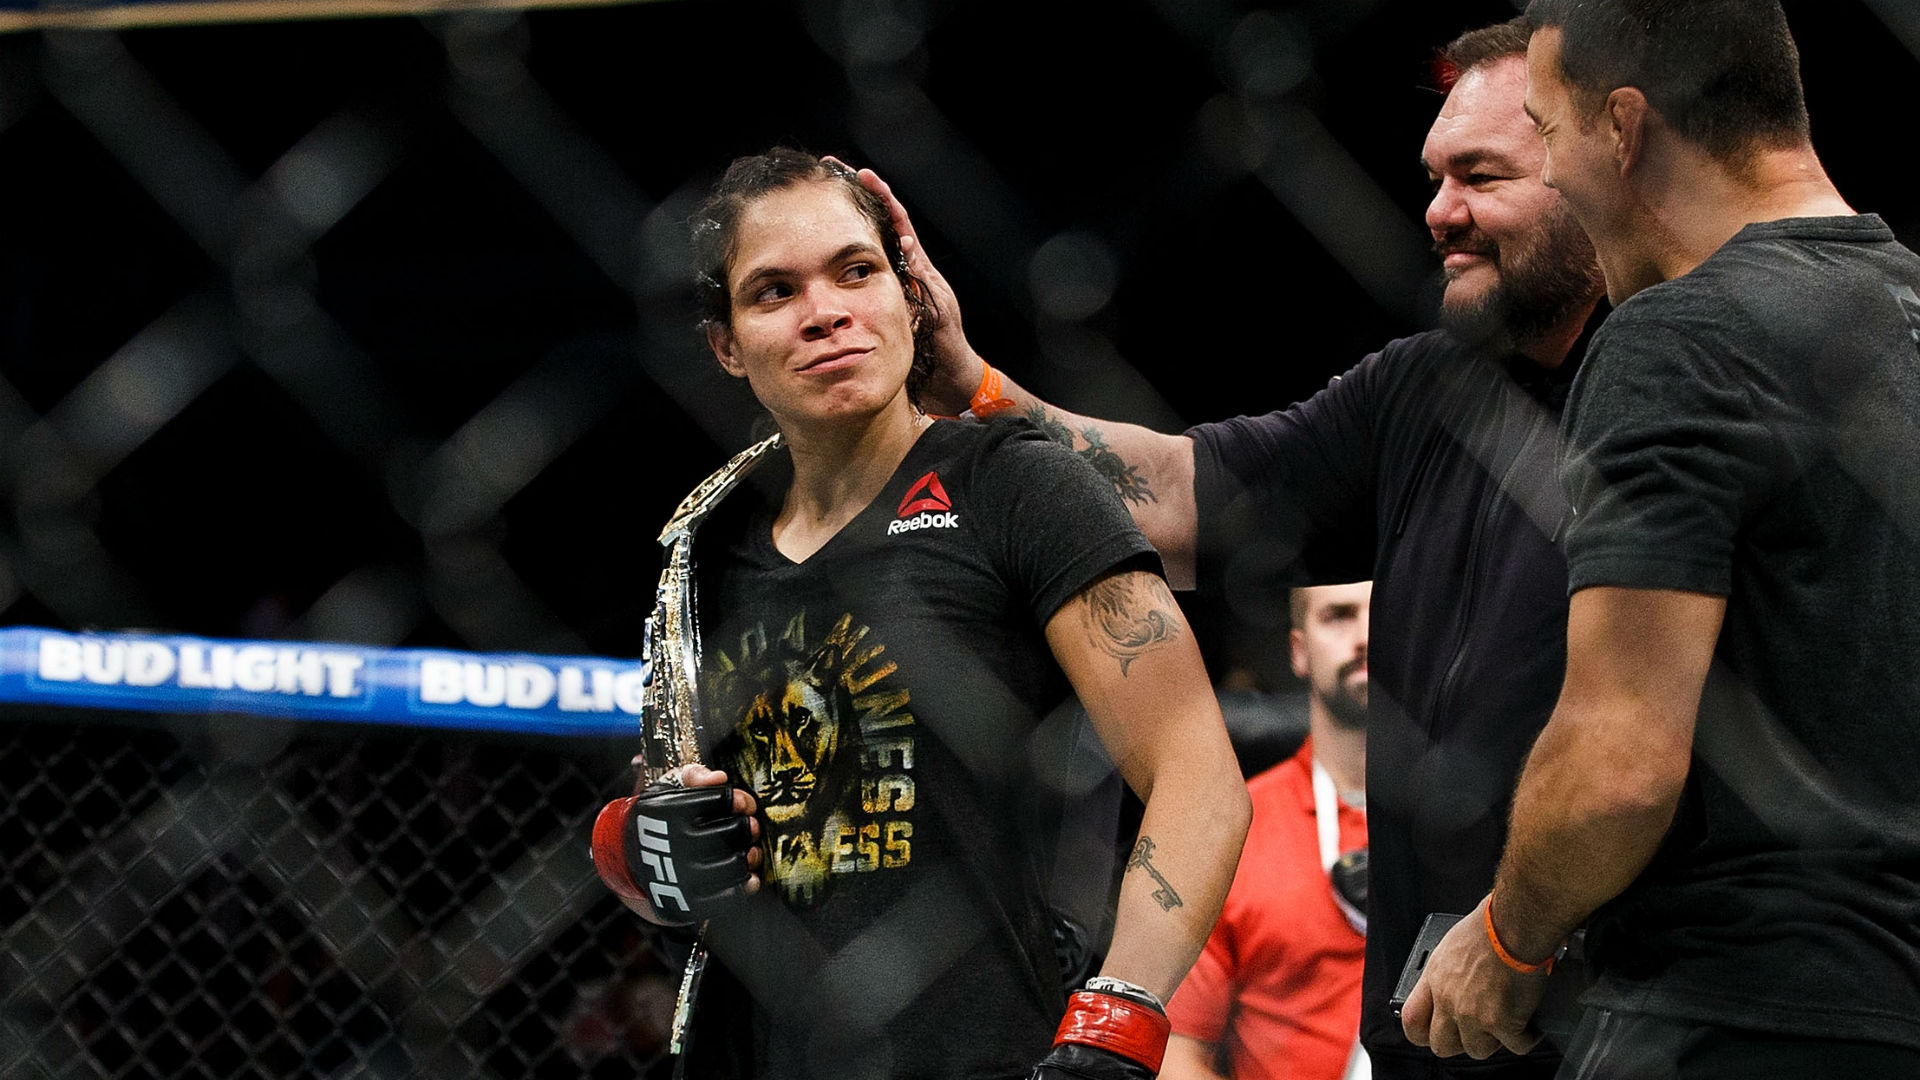 Amanda Nunes on speaking to ATT teammate Colby Covington about his behavior: 'Why do I need to talk to him?'